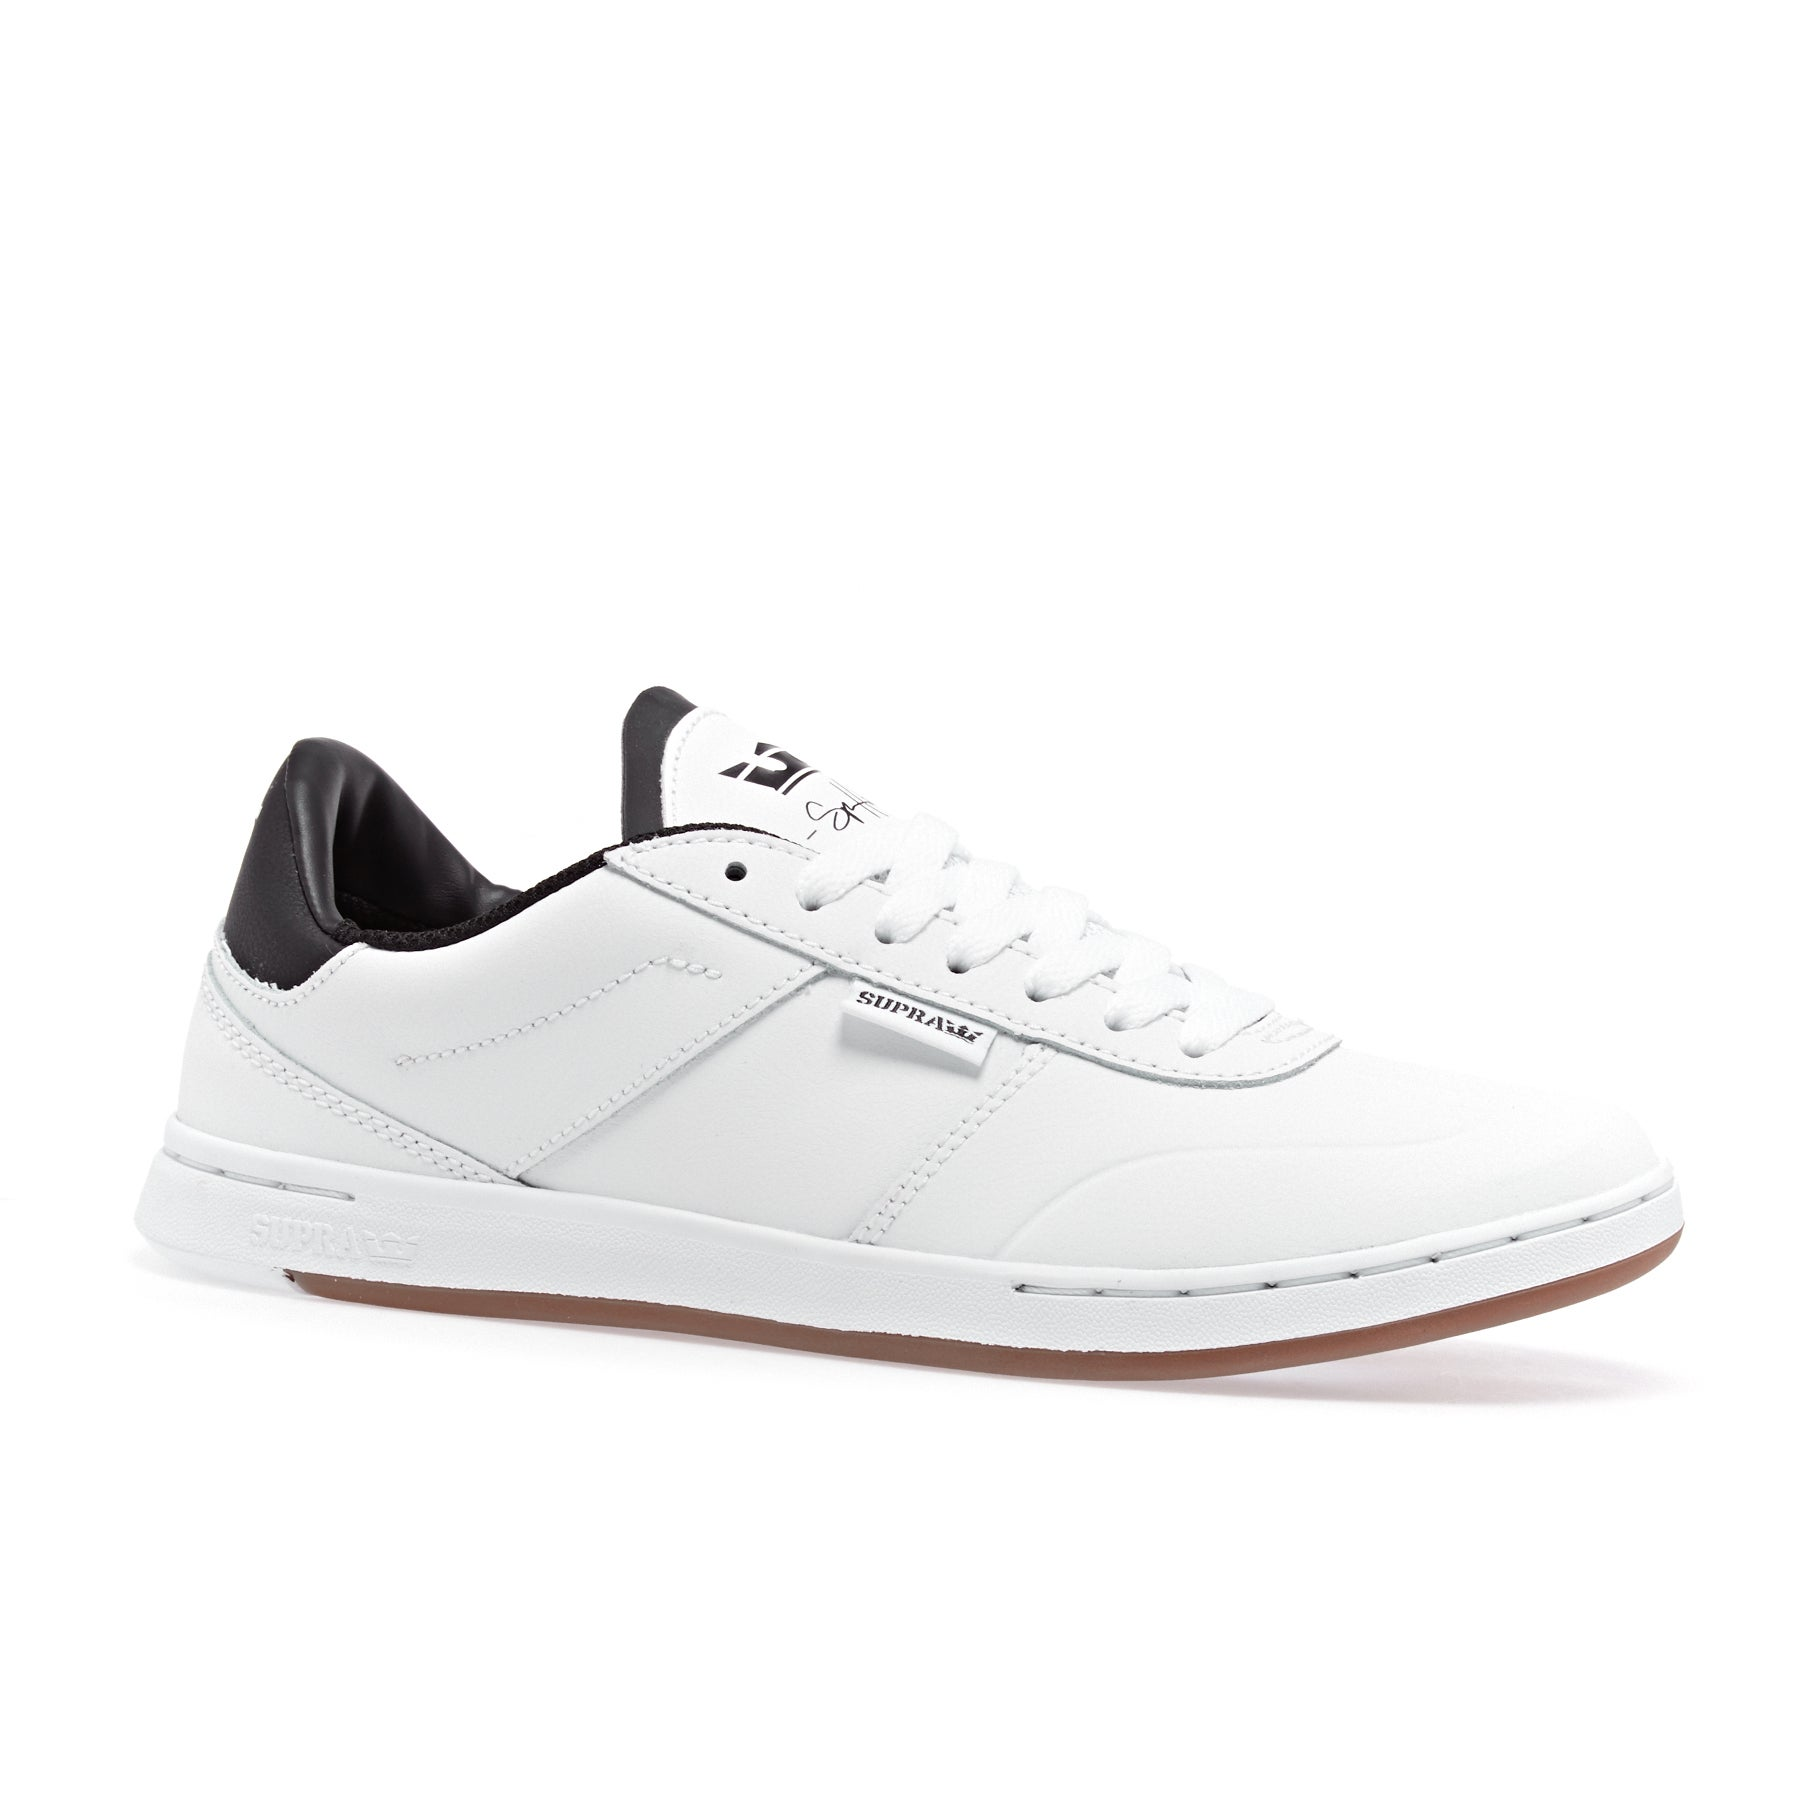 Supra Elevate Shoes - White/black-white